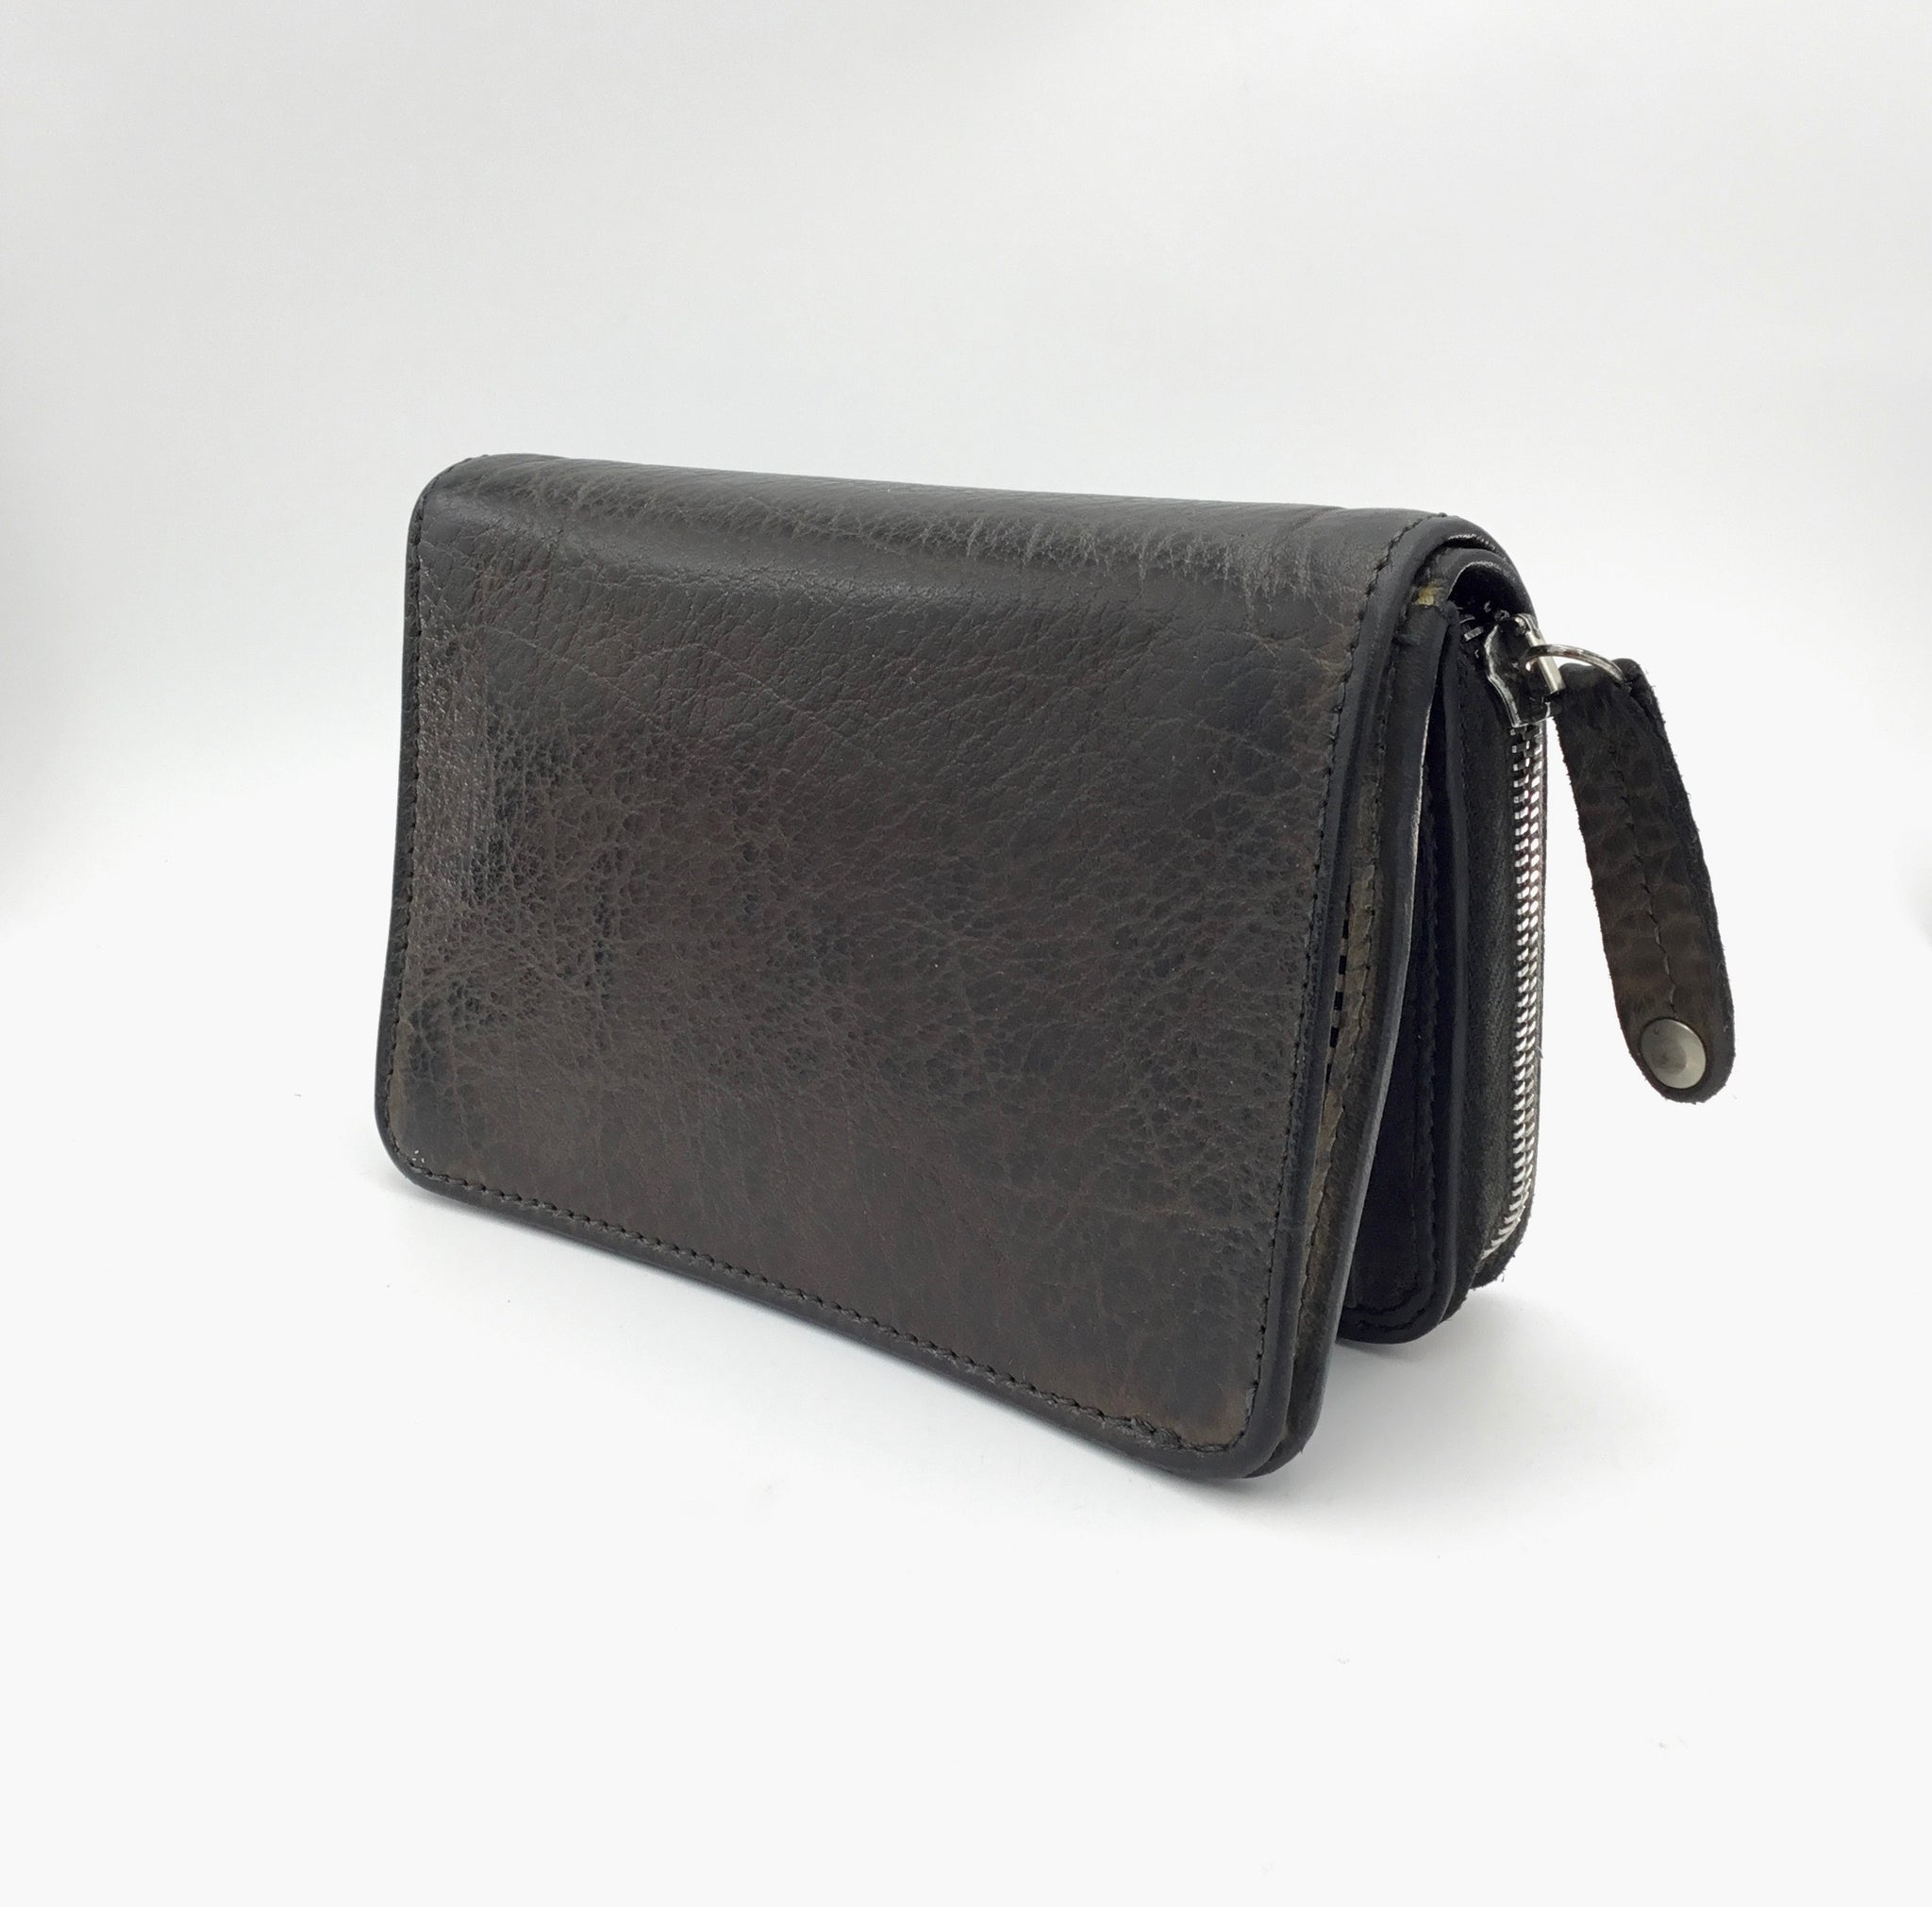 Vive la Difference Brown Leather Wallet